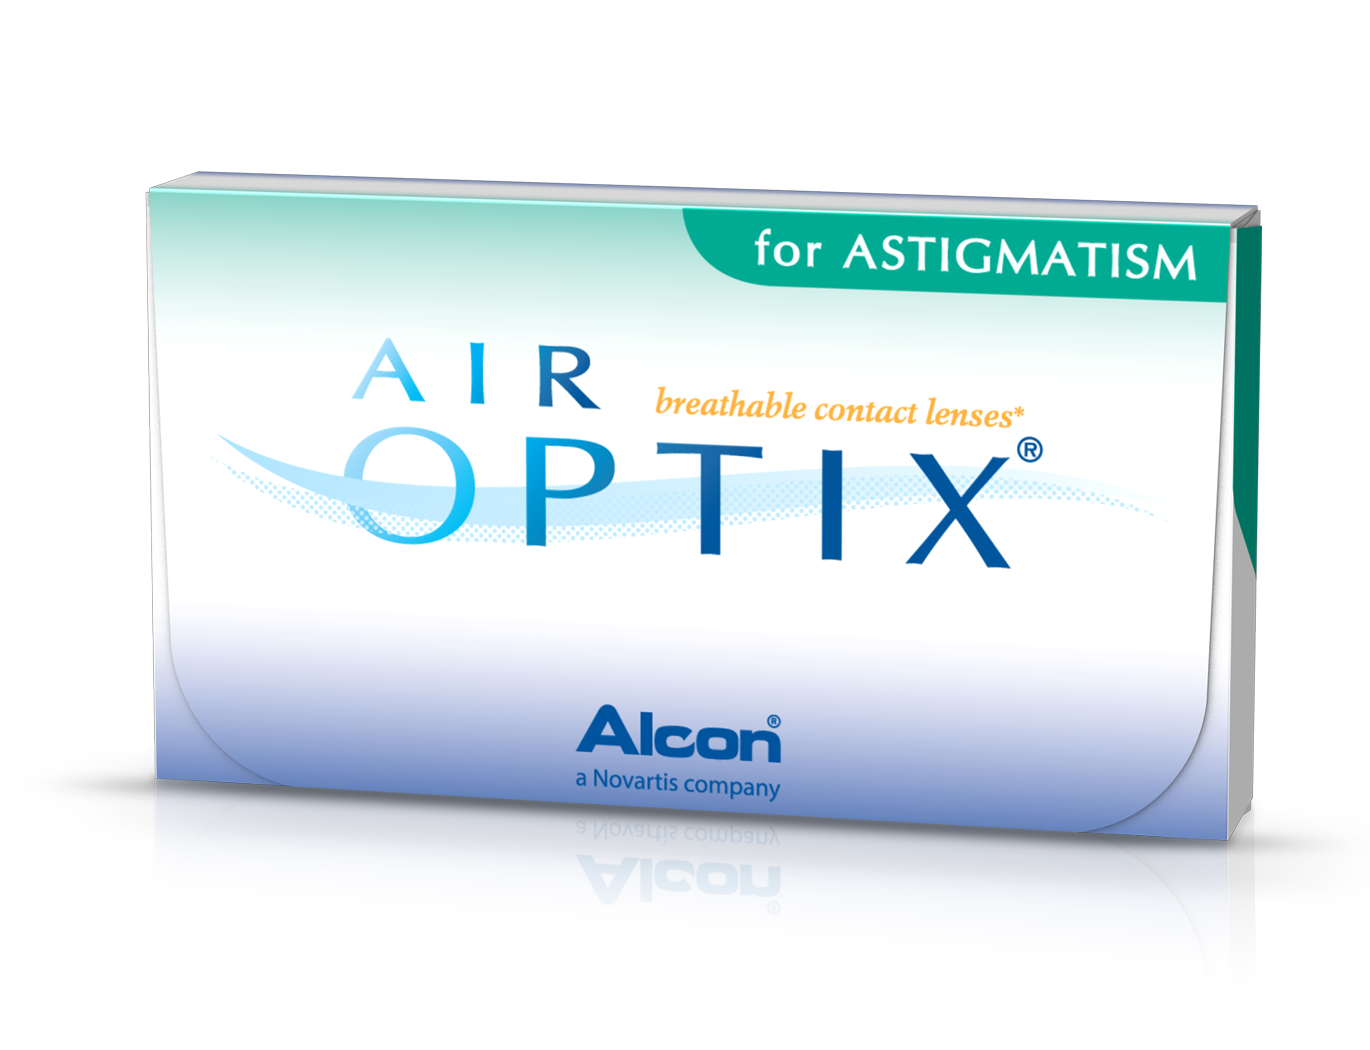 25b89c2762 lente de contacto air optix astigmatismo air optix aqua para astigmatismo  air optix aqua para astigmatismo